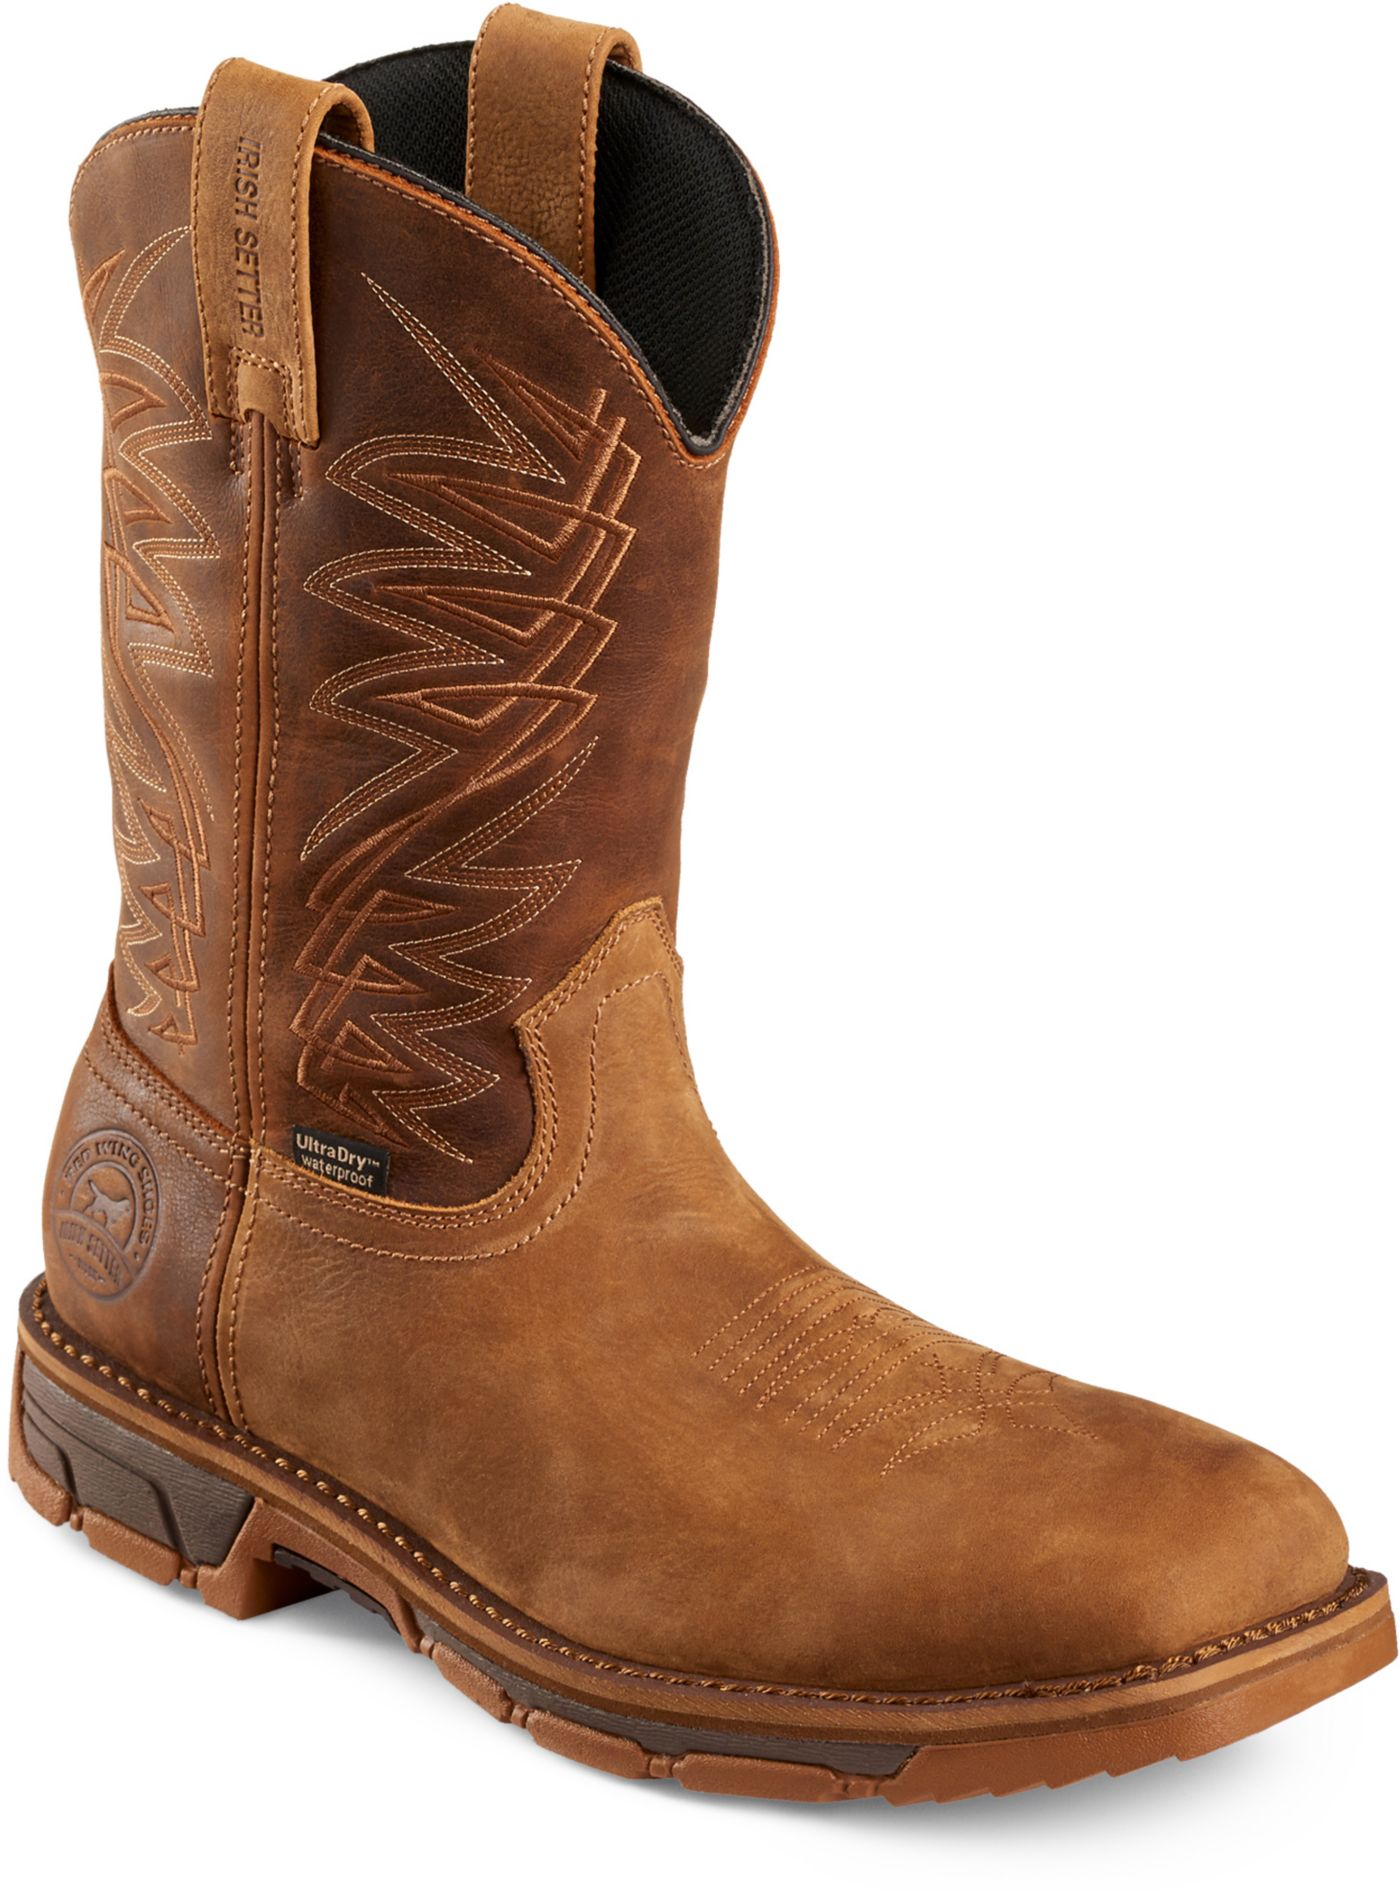 "Irish Setter Men's Marshall 11"" Pull-On Waterproof Square Steel Toe Work Boots"